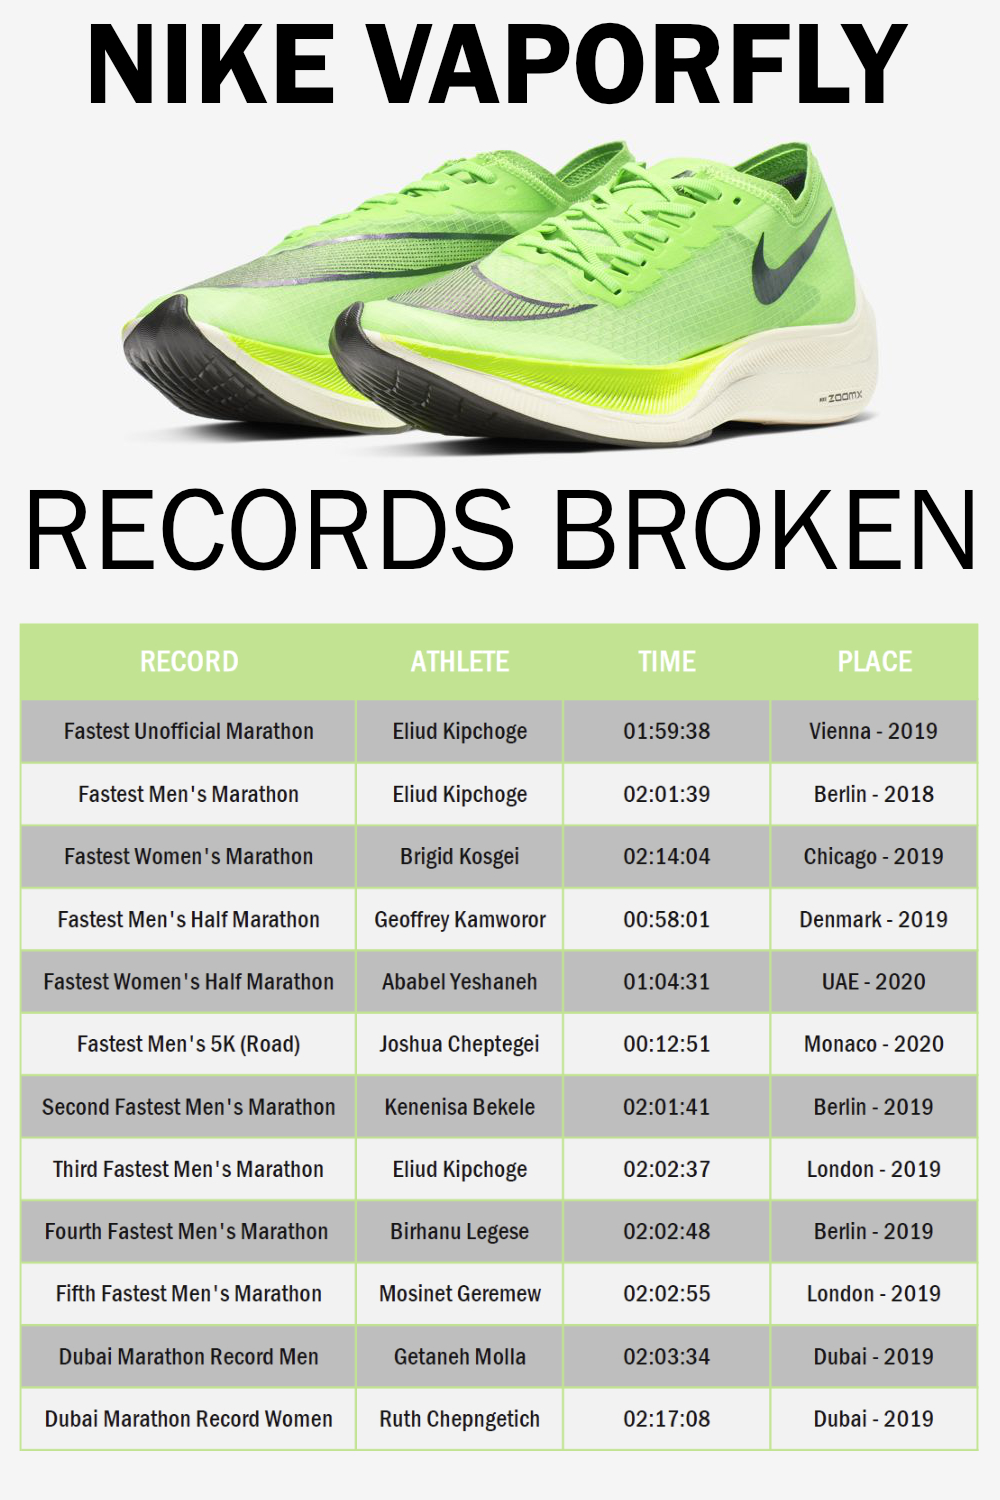 Nike Vaporfly Records Broken